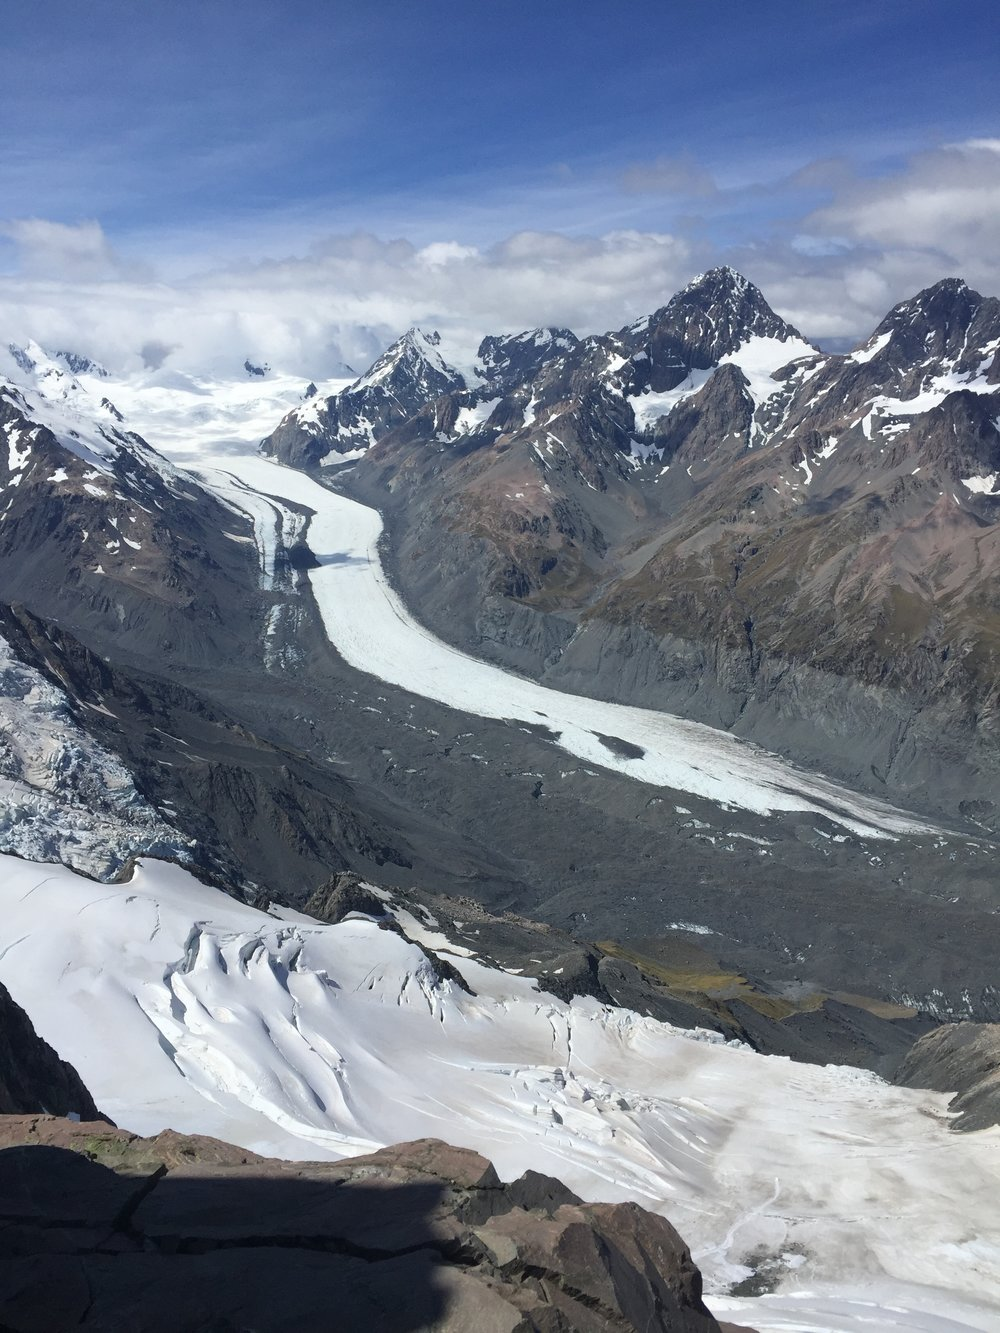 The Tasman Glacier, looking like an ice river, as seen from the summit of Glacier Dome